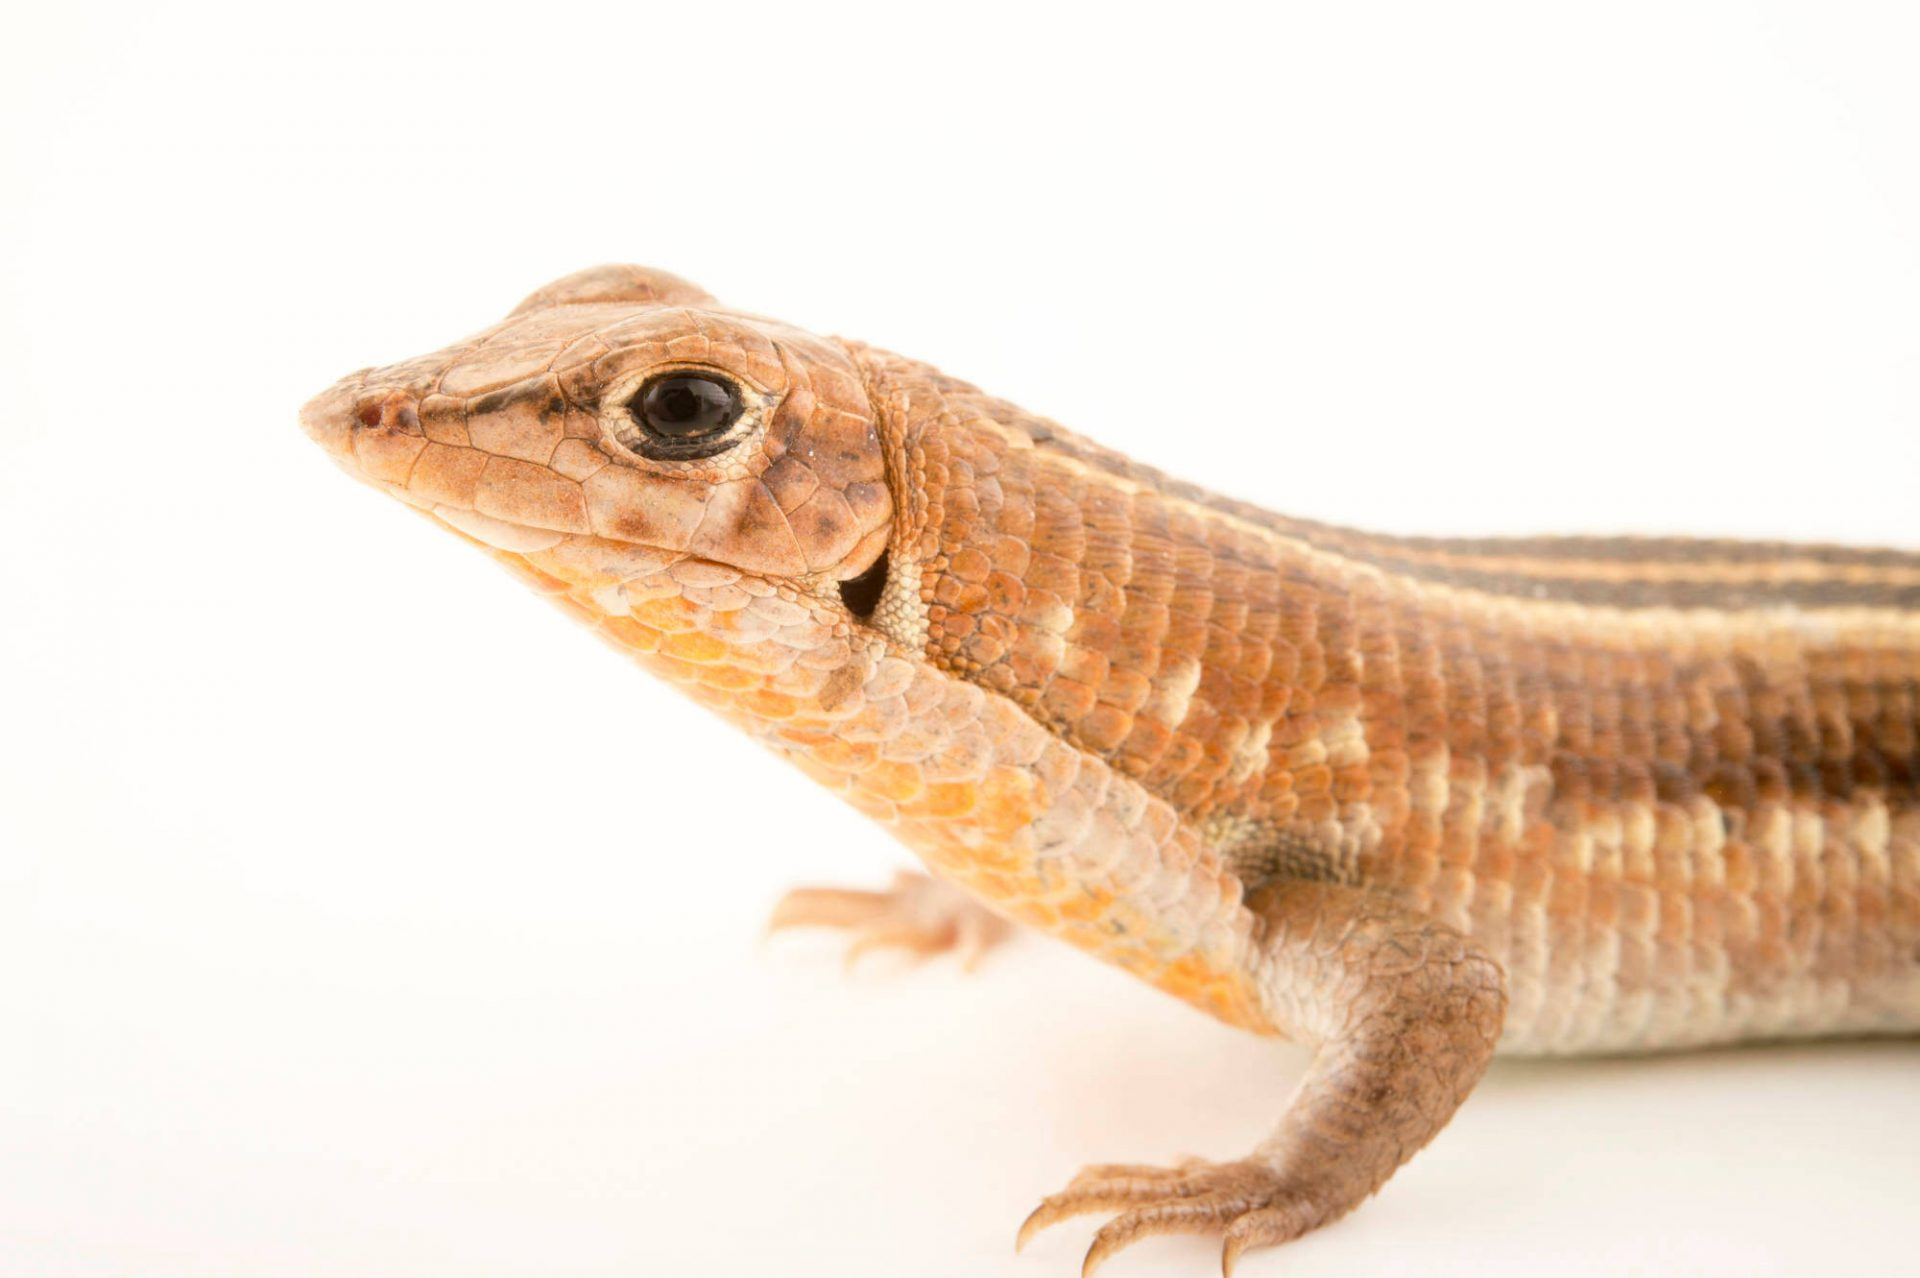 Photo: A Madagascar girdled lizard (Tracheloptychus madagascariensis) at the Plzen Zoo.